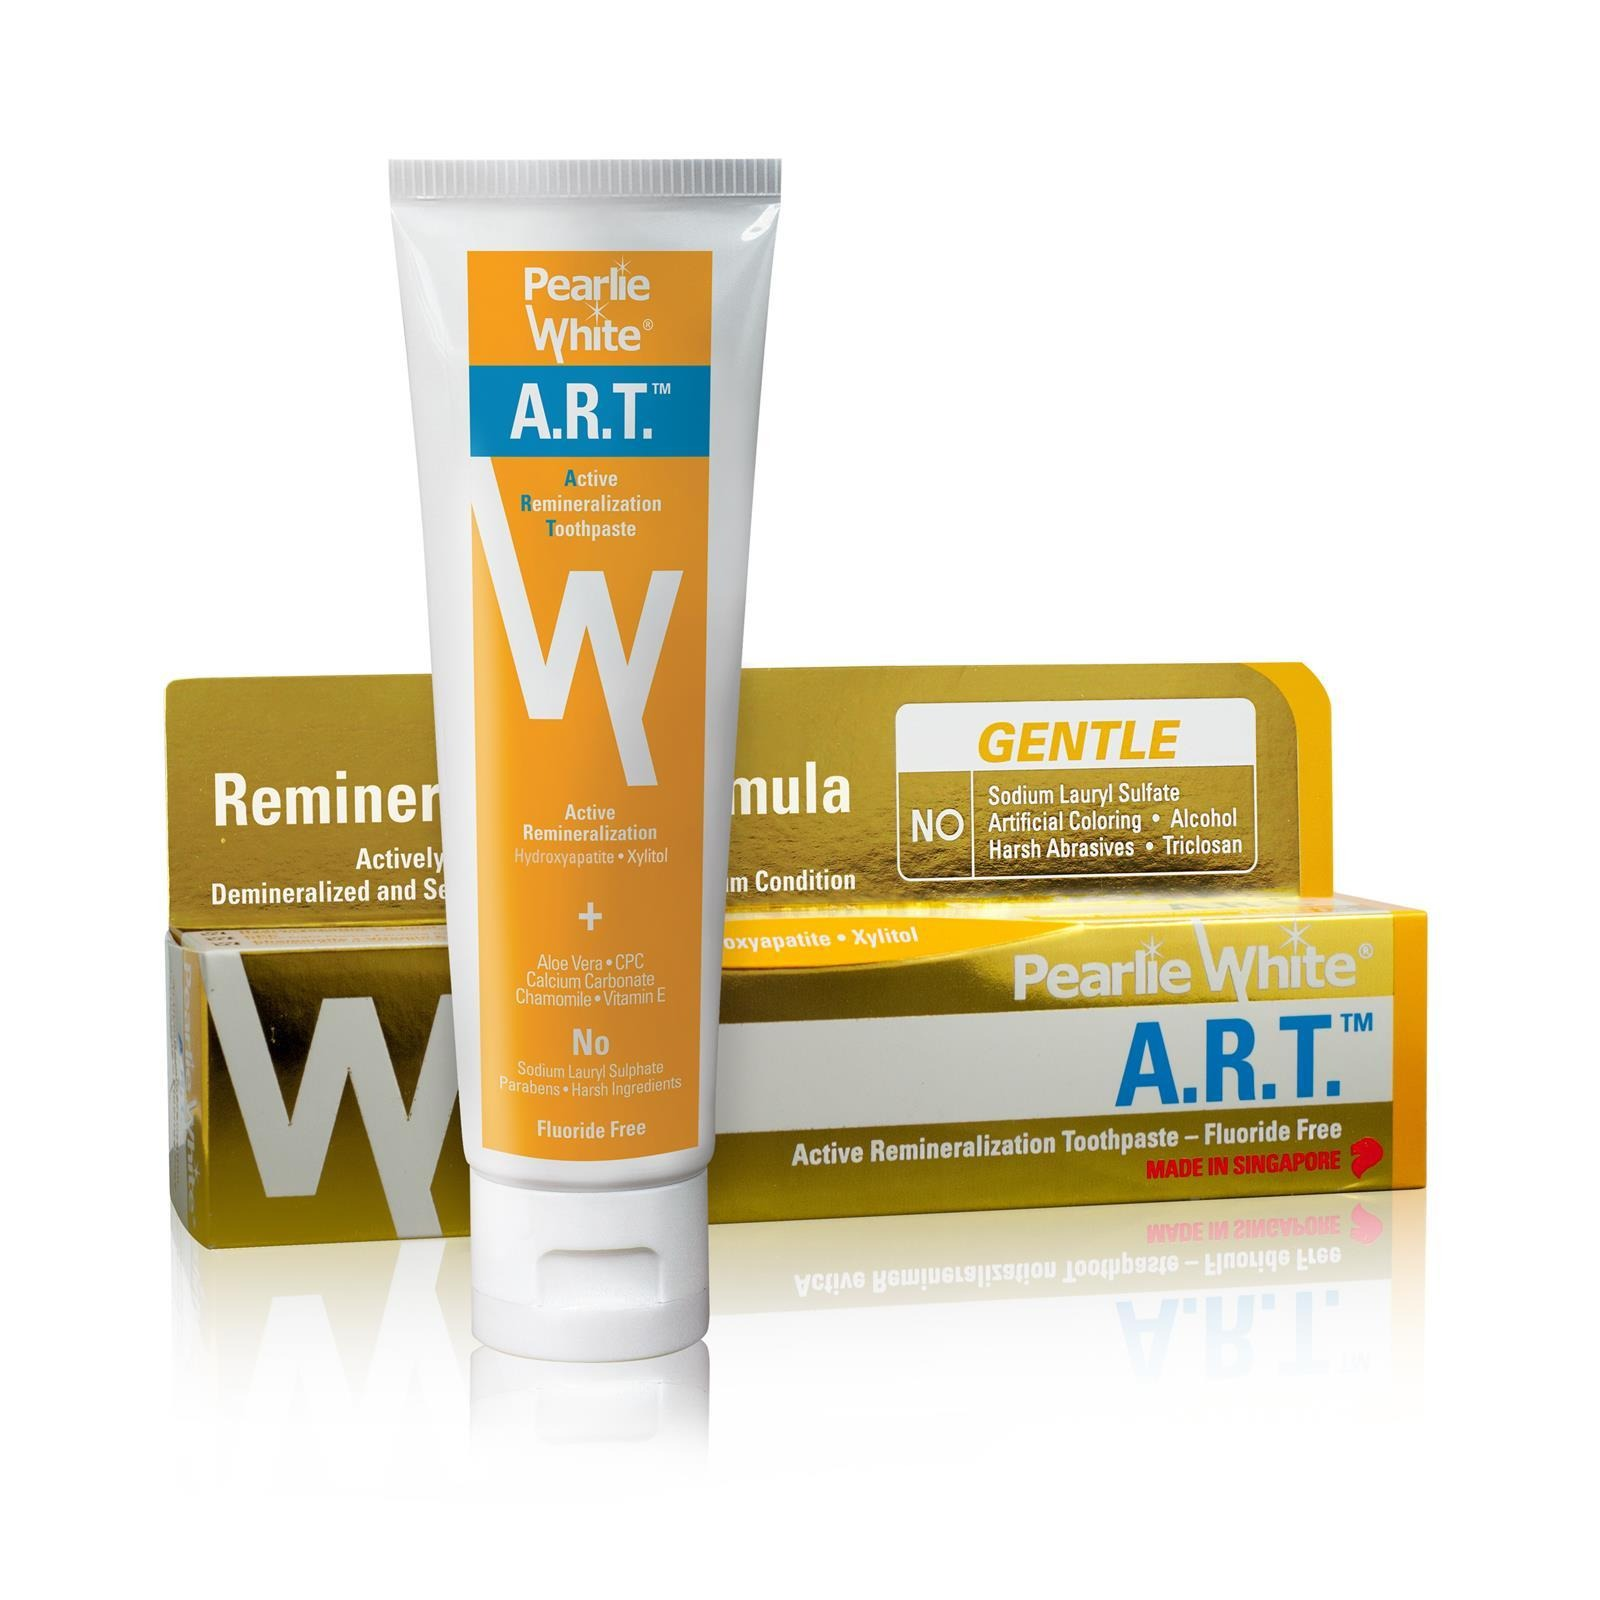 Pearlie White Active Remineralization Fluoride Free Toothpaste